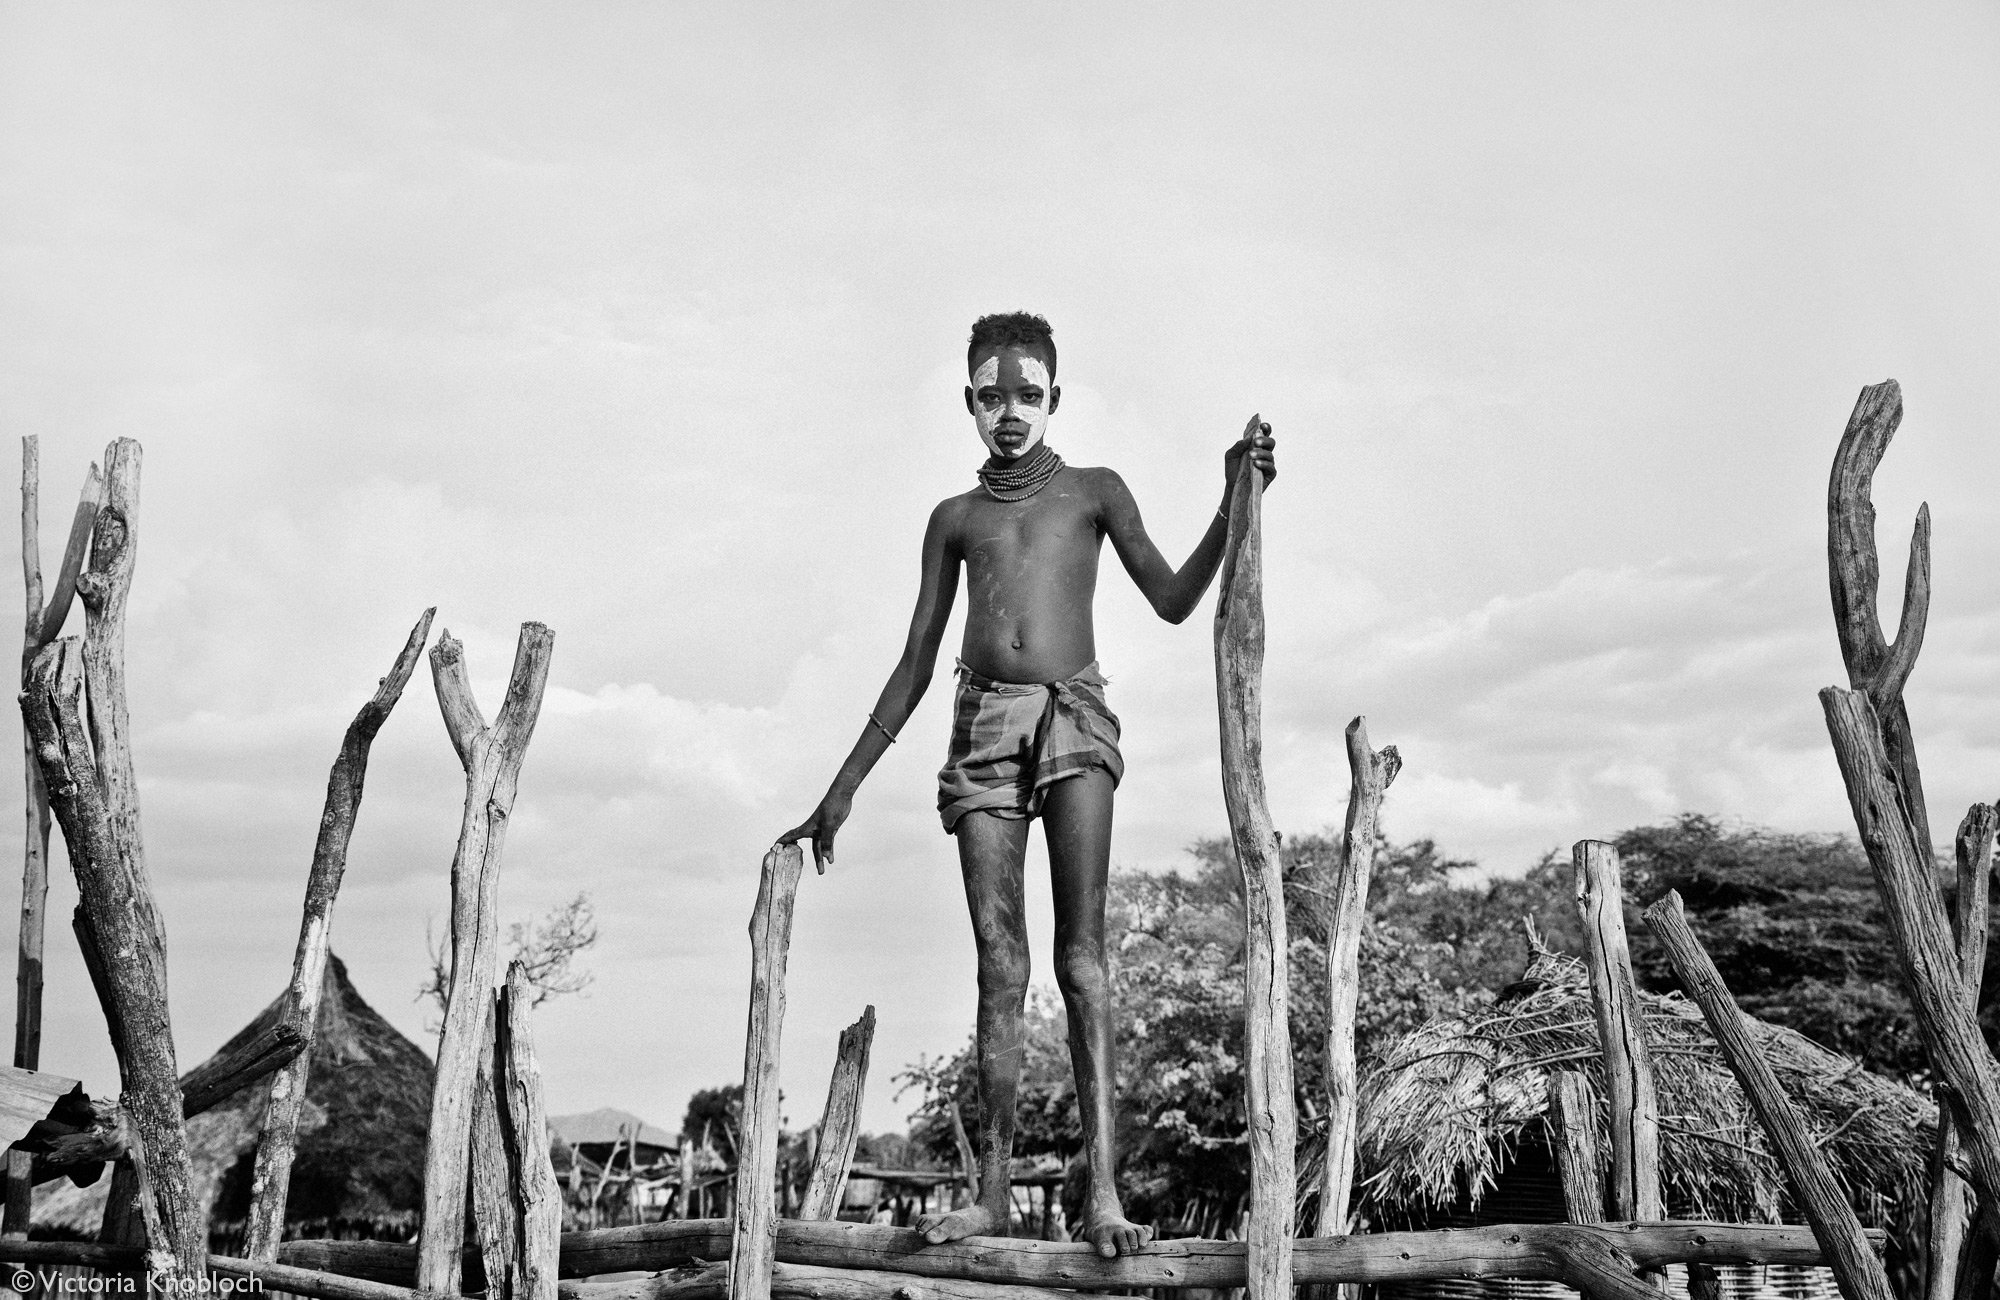 Karo tribe boy standing on top of wooden fence, Omo Valley, Ethiopia